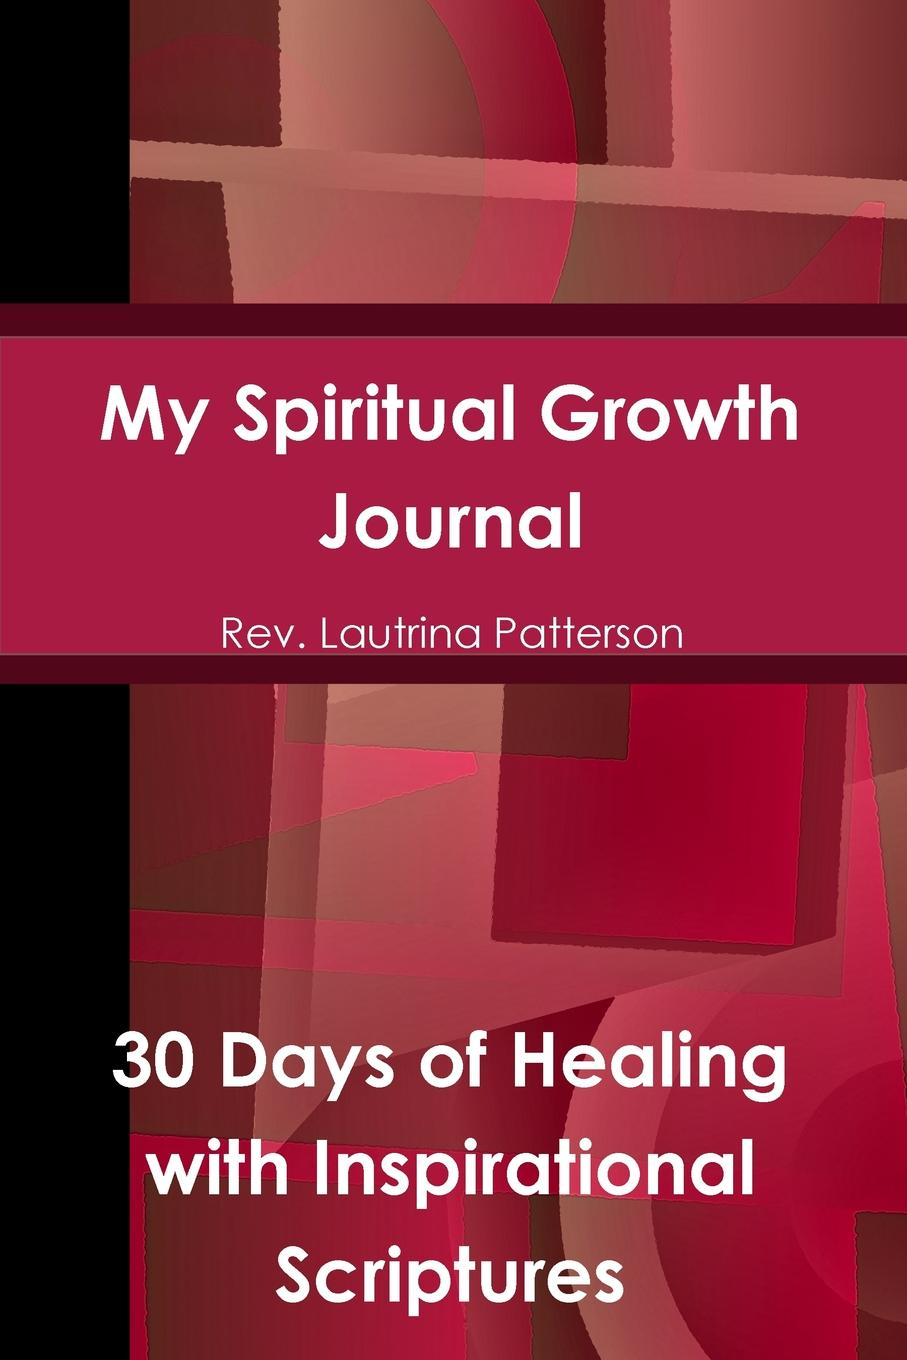 Rev. Lautrina Patterson My Spiritual Growth Journal 30 Days of Healing, with Inspirational Scriptures hashtagaday a hashtag journal